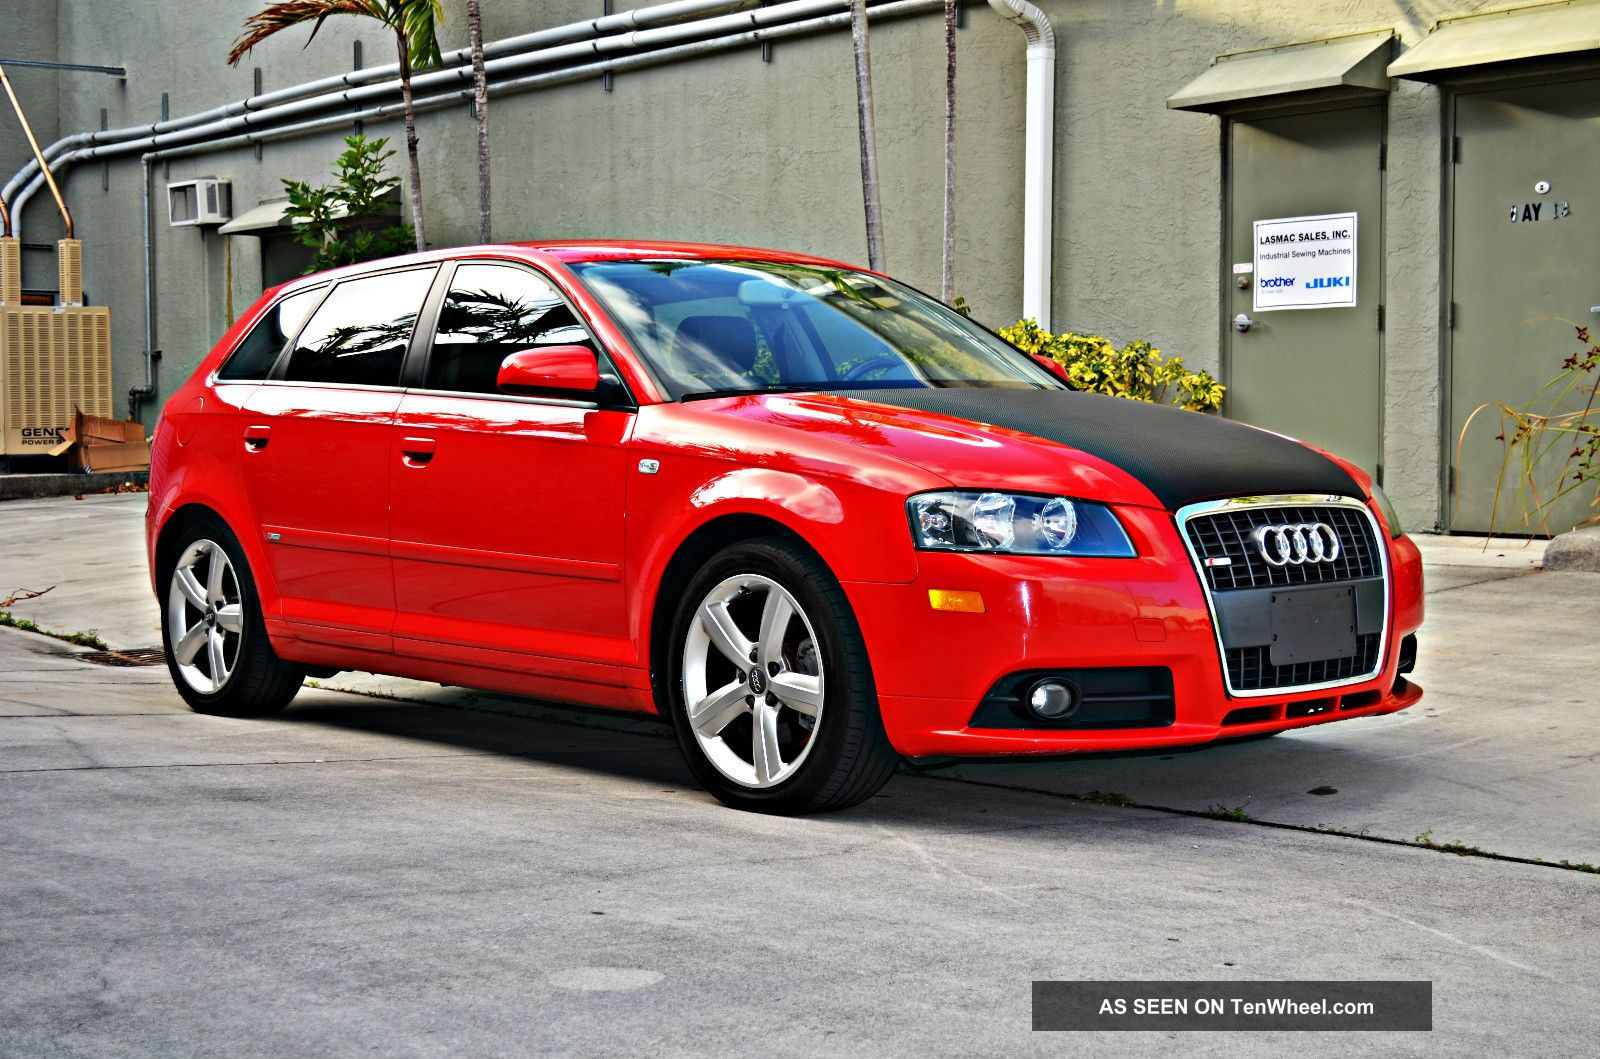 2008 audi a3 s line 2 0t sporty stunning. Black Bedroom Furniture Sets. Home Design Ideas